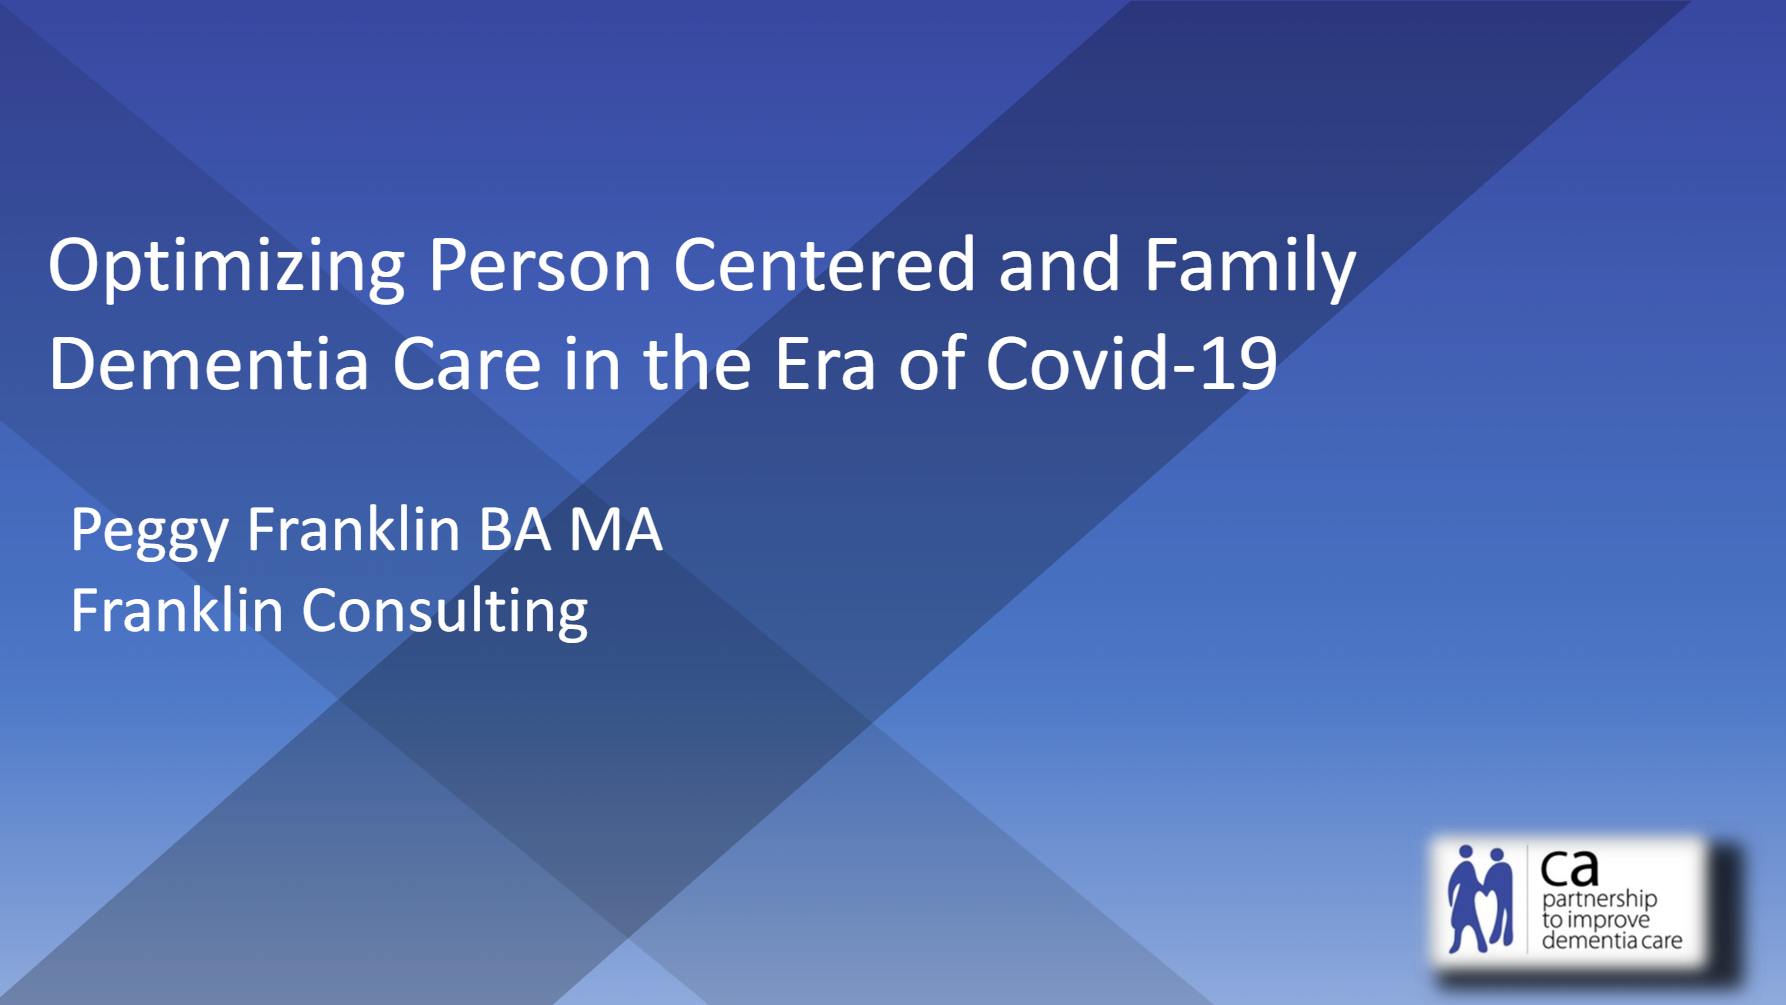 Family Support for Dementia Caregivers During COVID-19